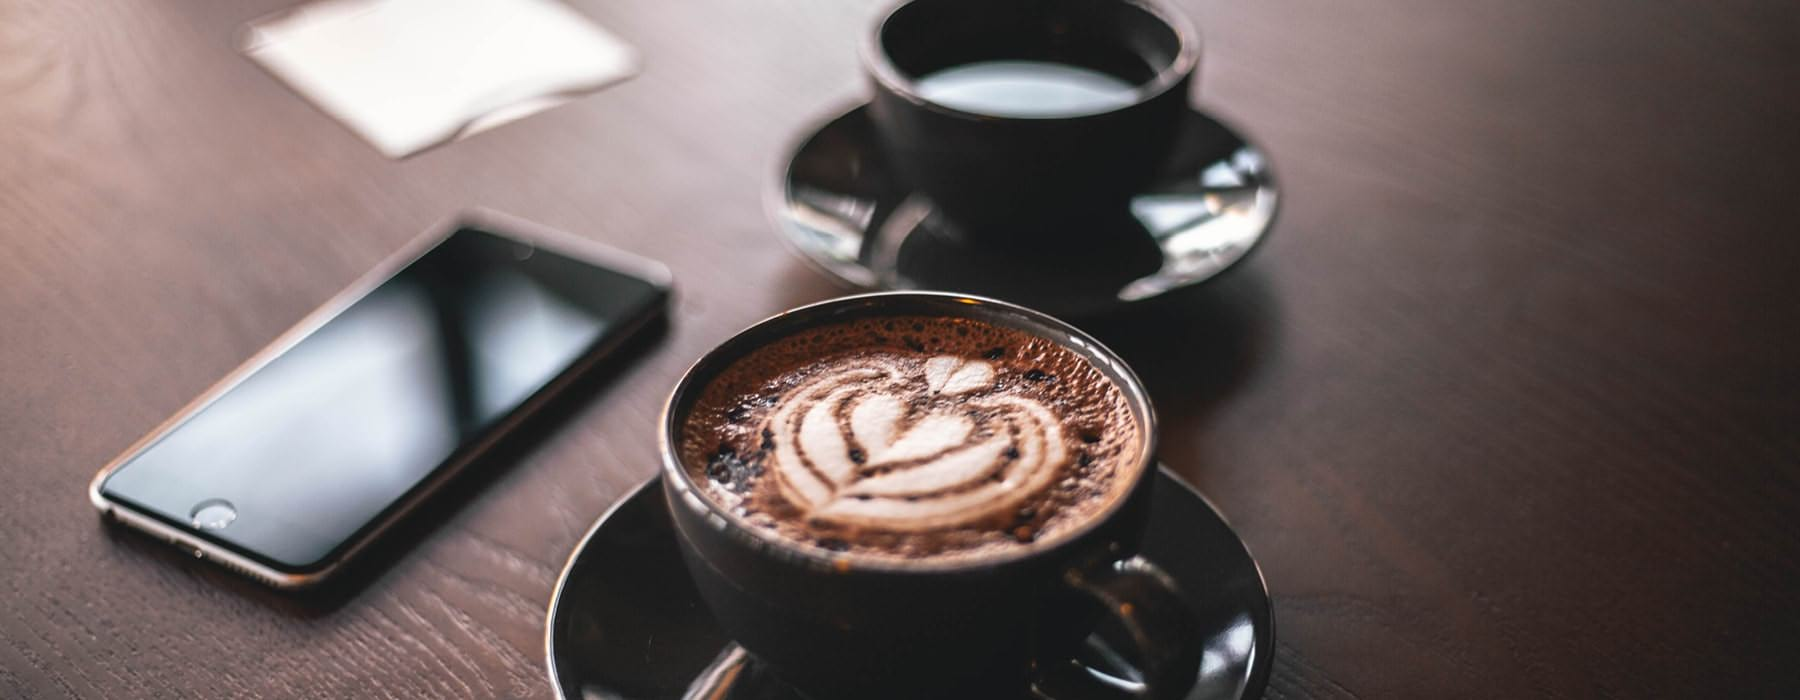 two cups of coffee on table next to cell phone